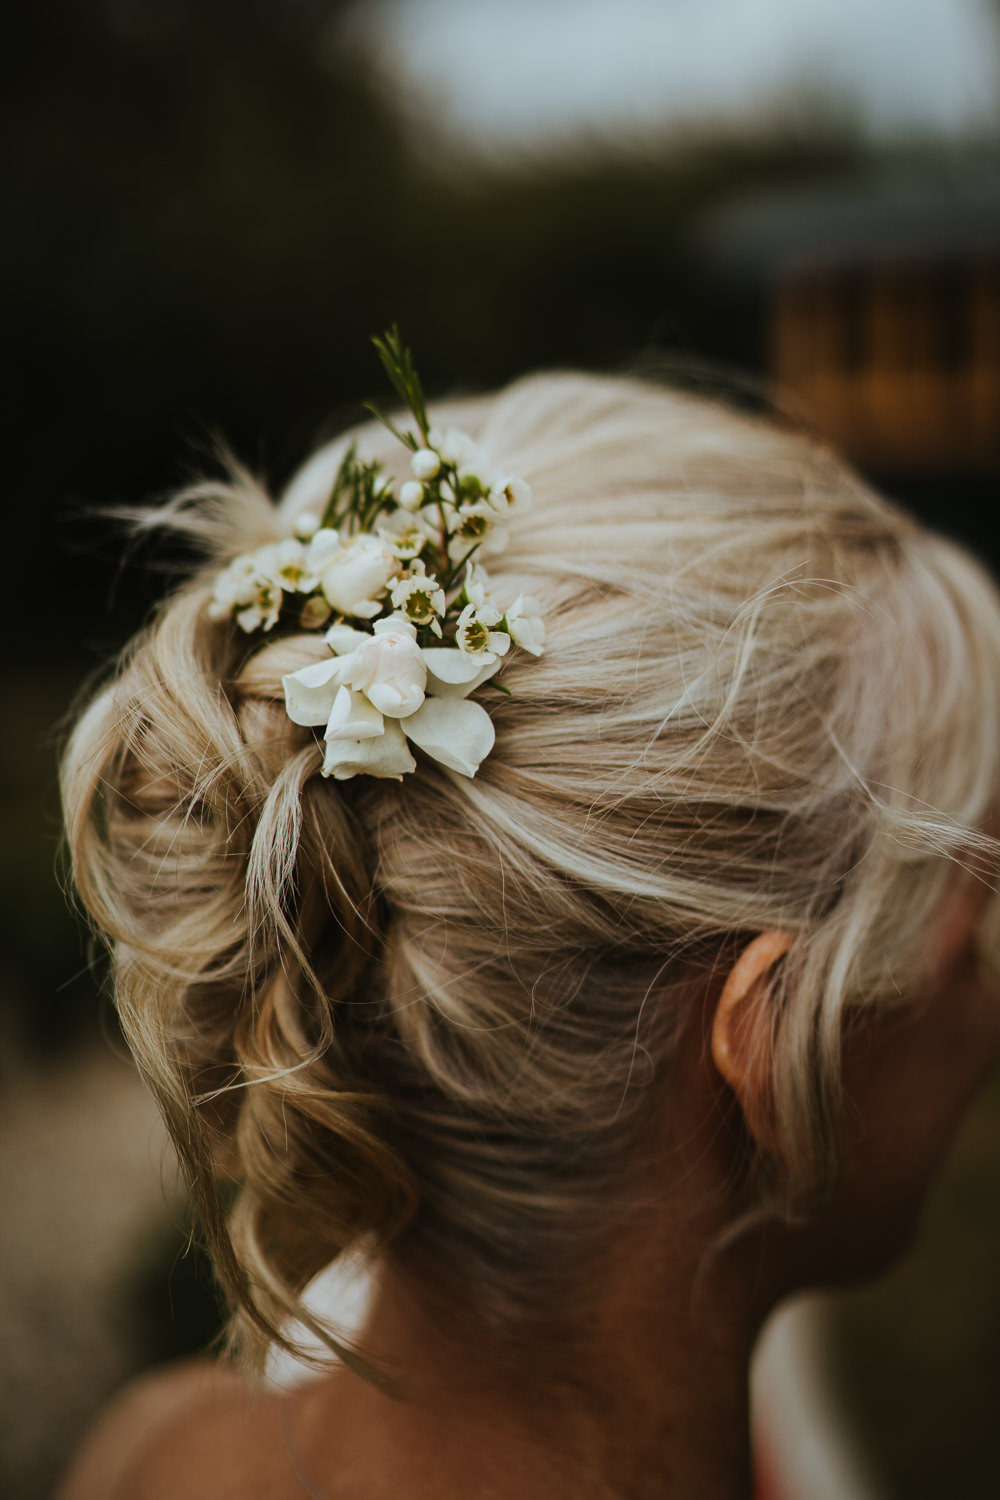 Bride Bridal Hair Style Up Do Flowers Micro Wedding Nicola Dawson Photography